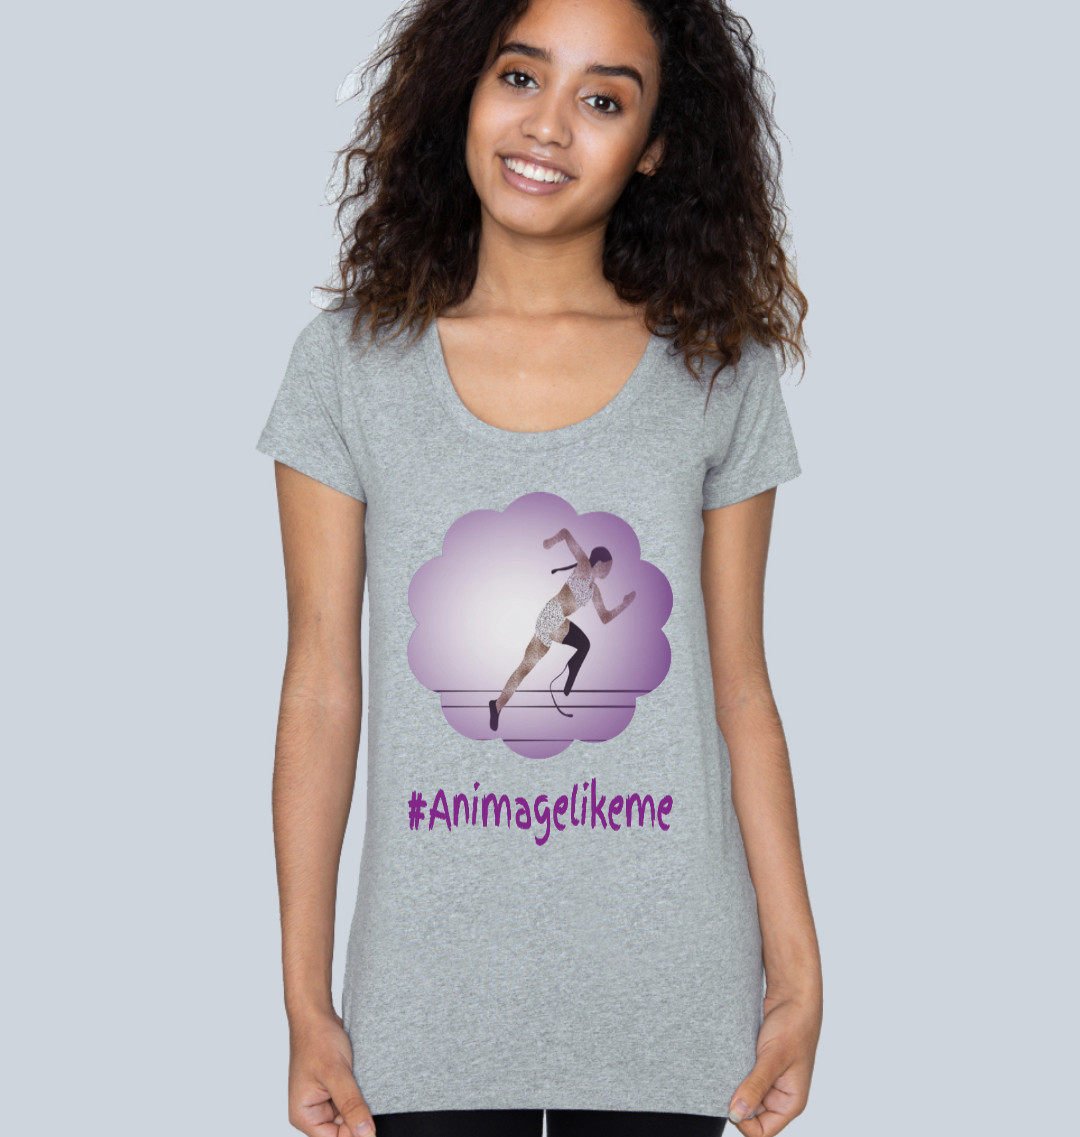 Diversity Designs Blade Girl in Shorts Running T-Shirt